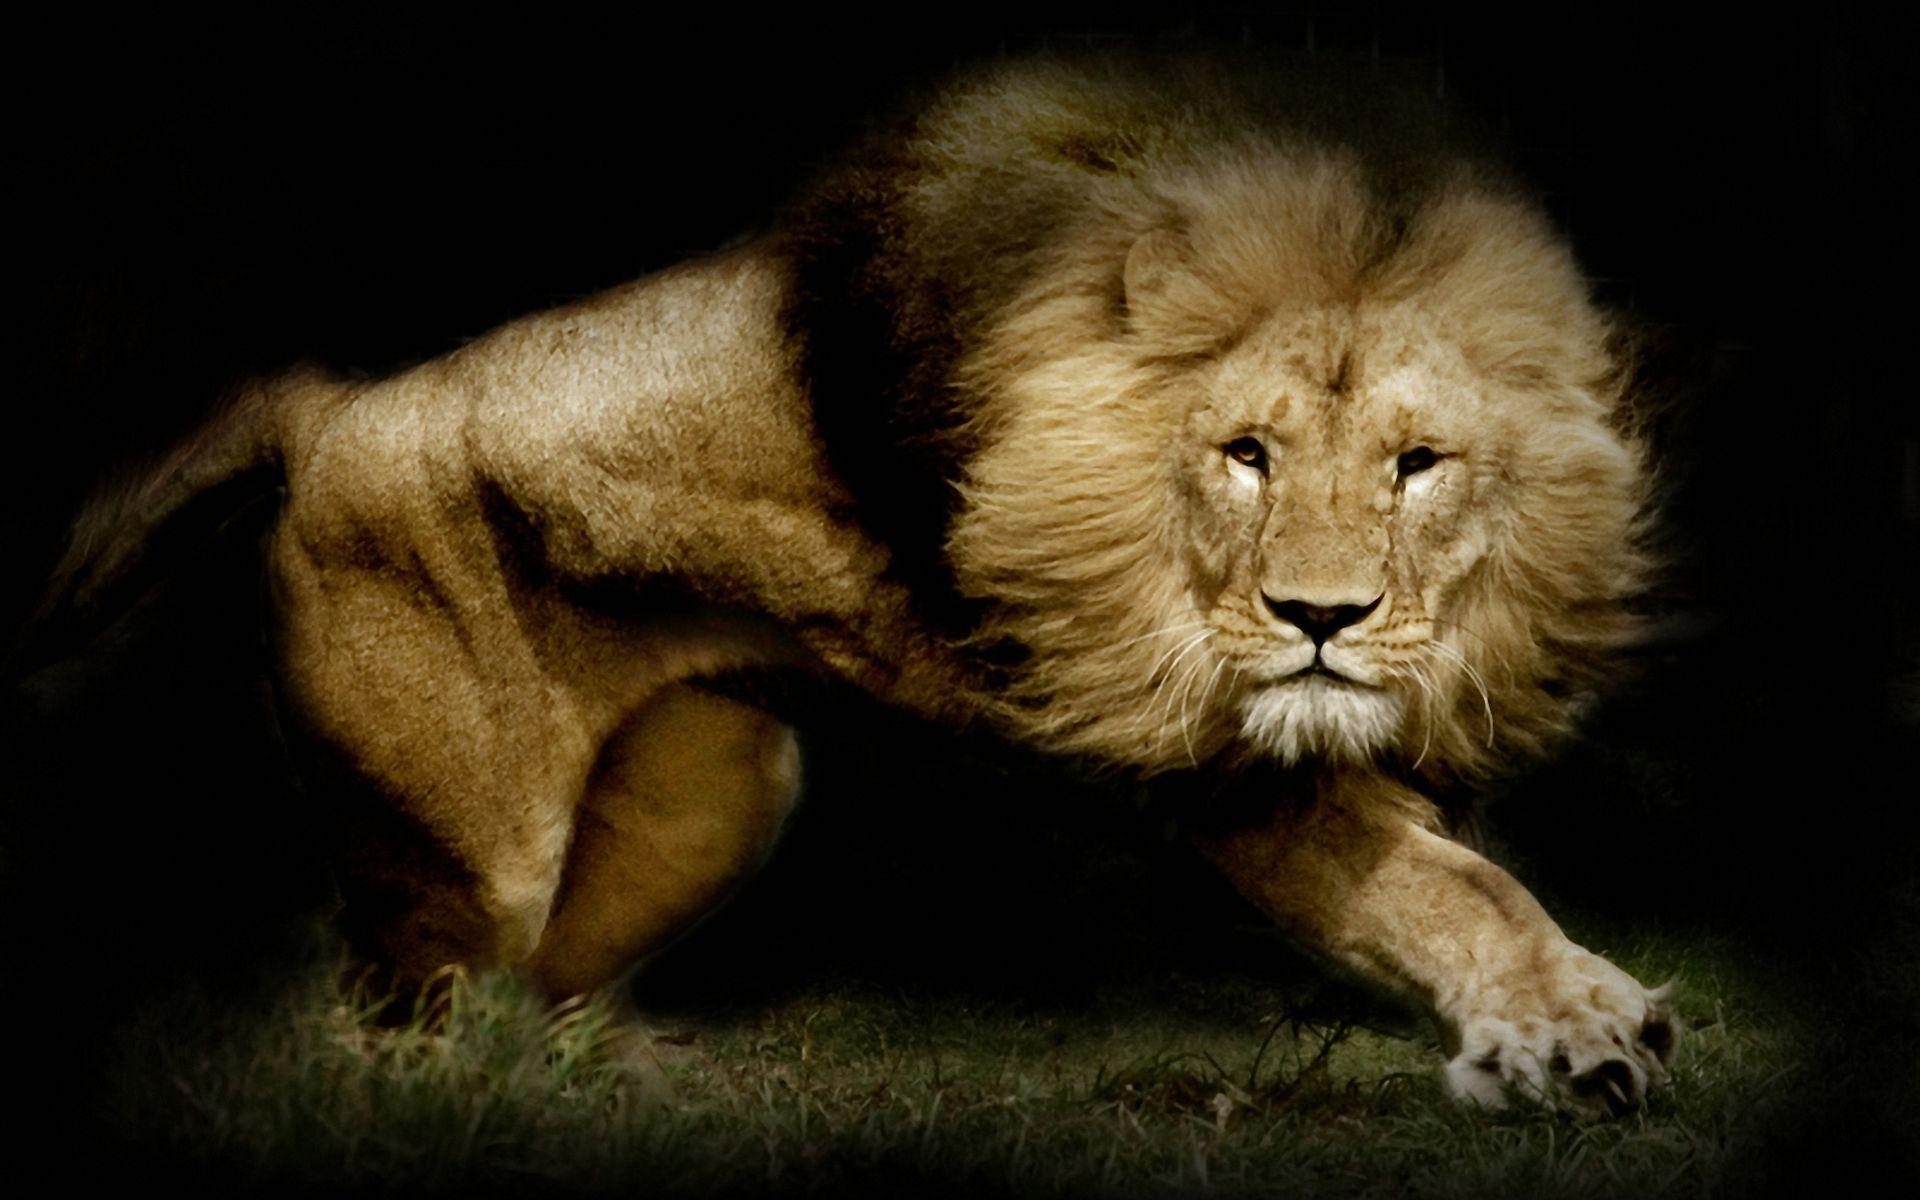 Lion Wallpaper 50 Backgrounds | Wallruru.